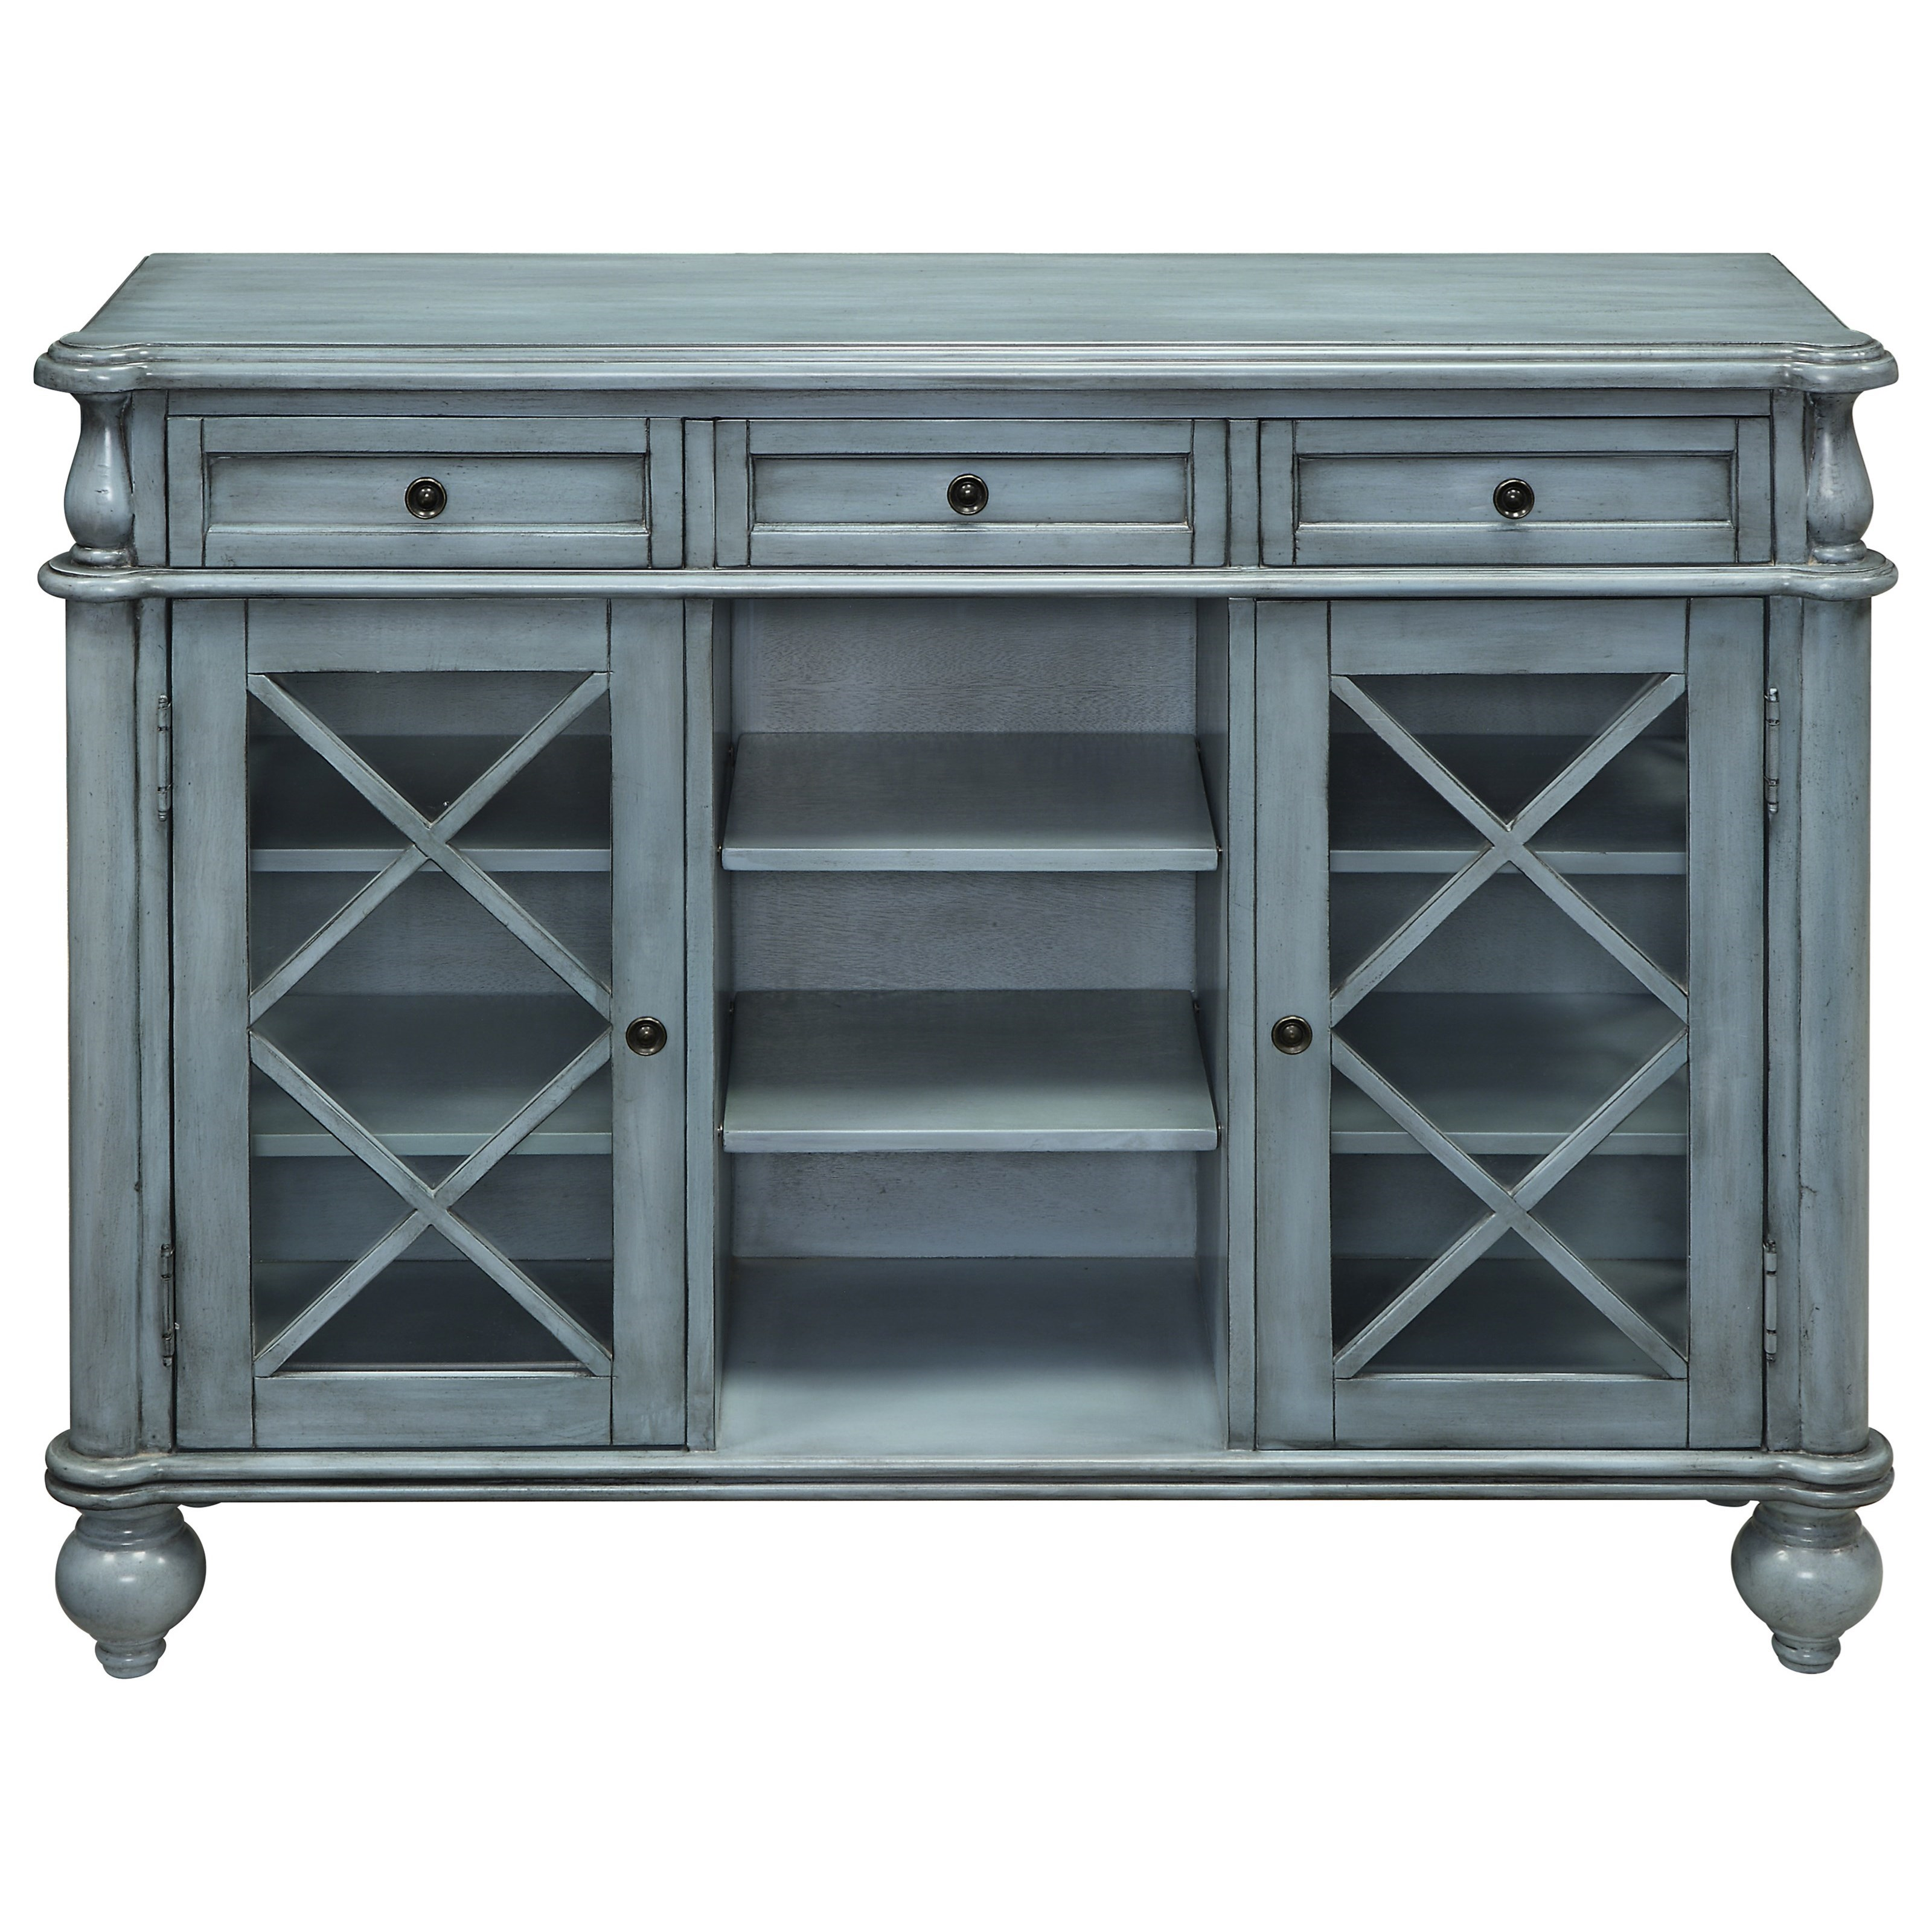 Coast to Coast Accents Three Drawer Two Door Credenza by Coast to Coast Imports at Baer's Furniture